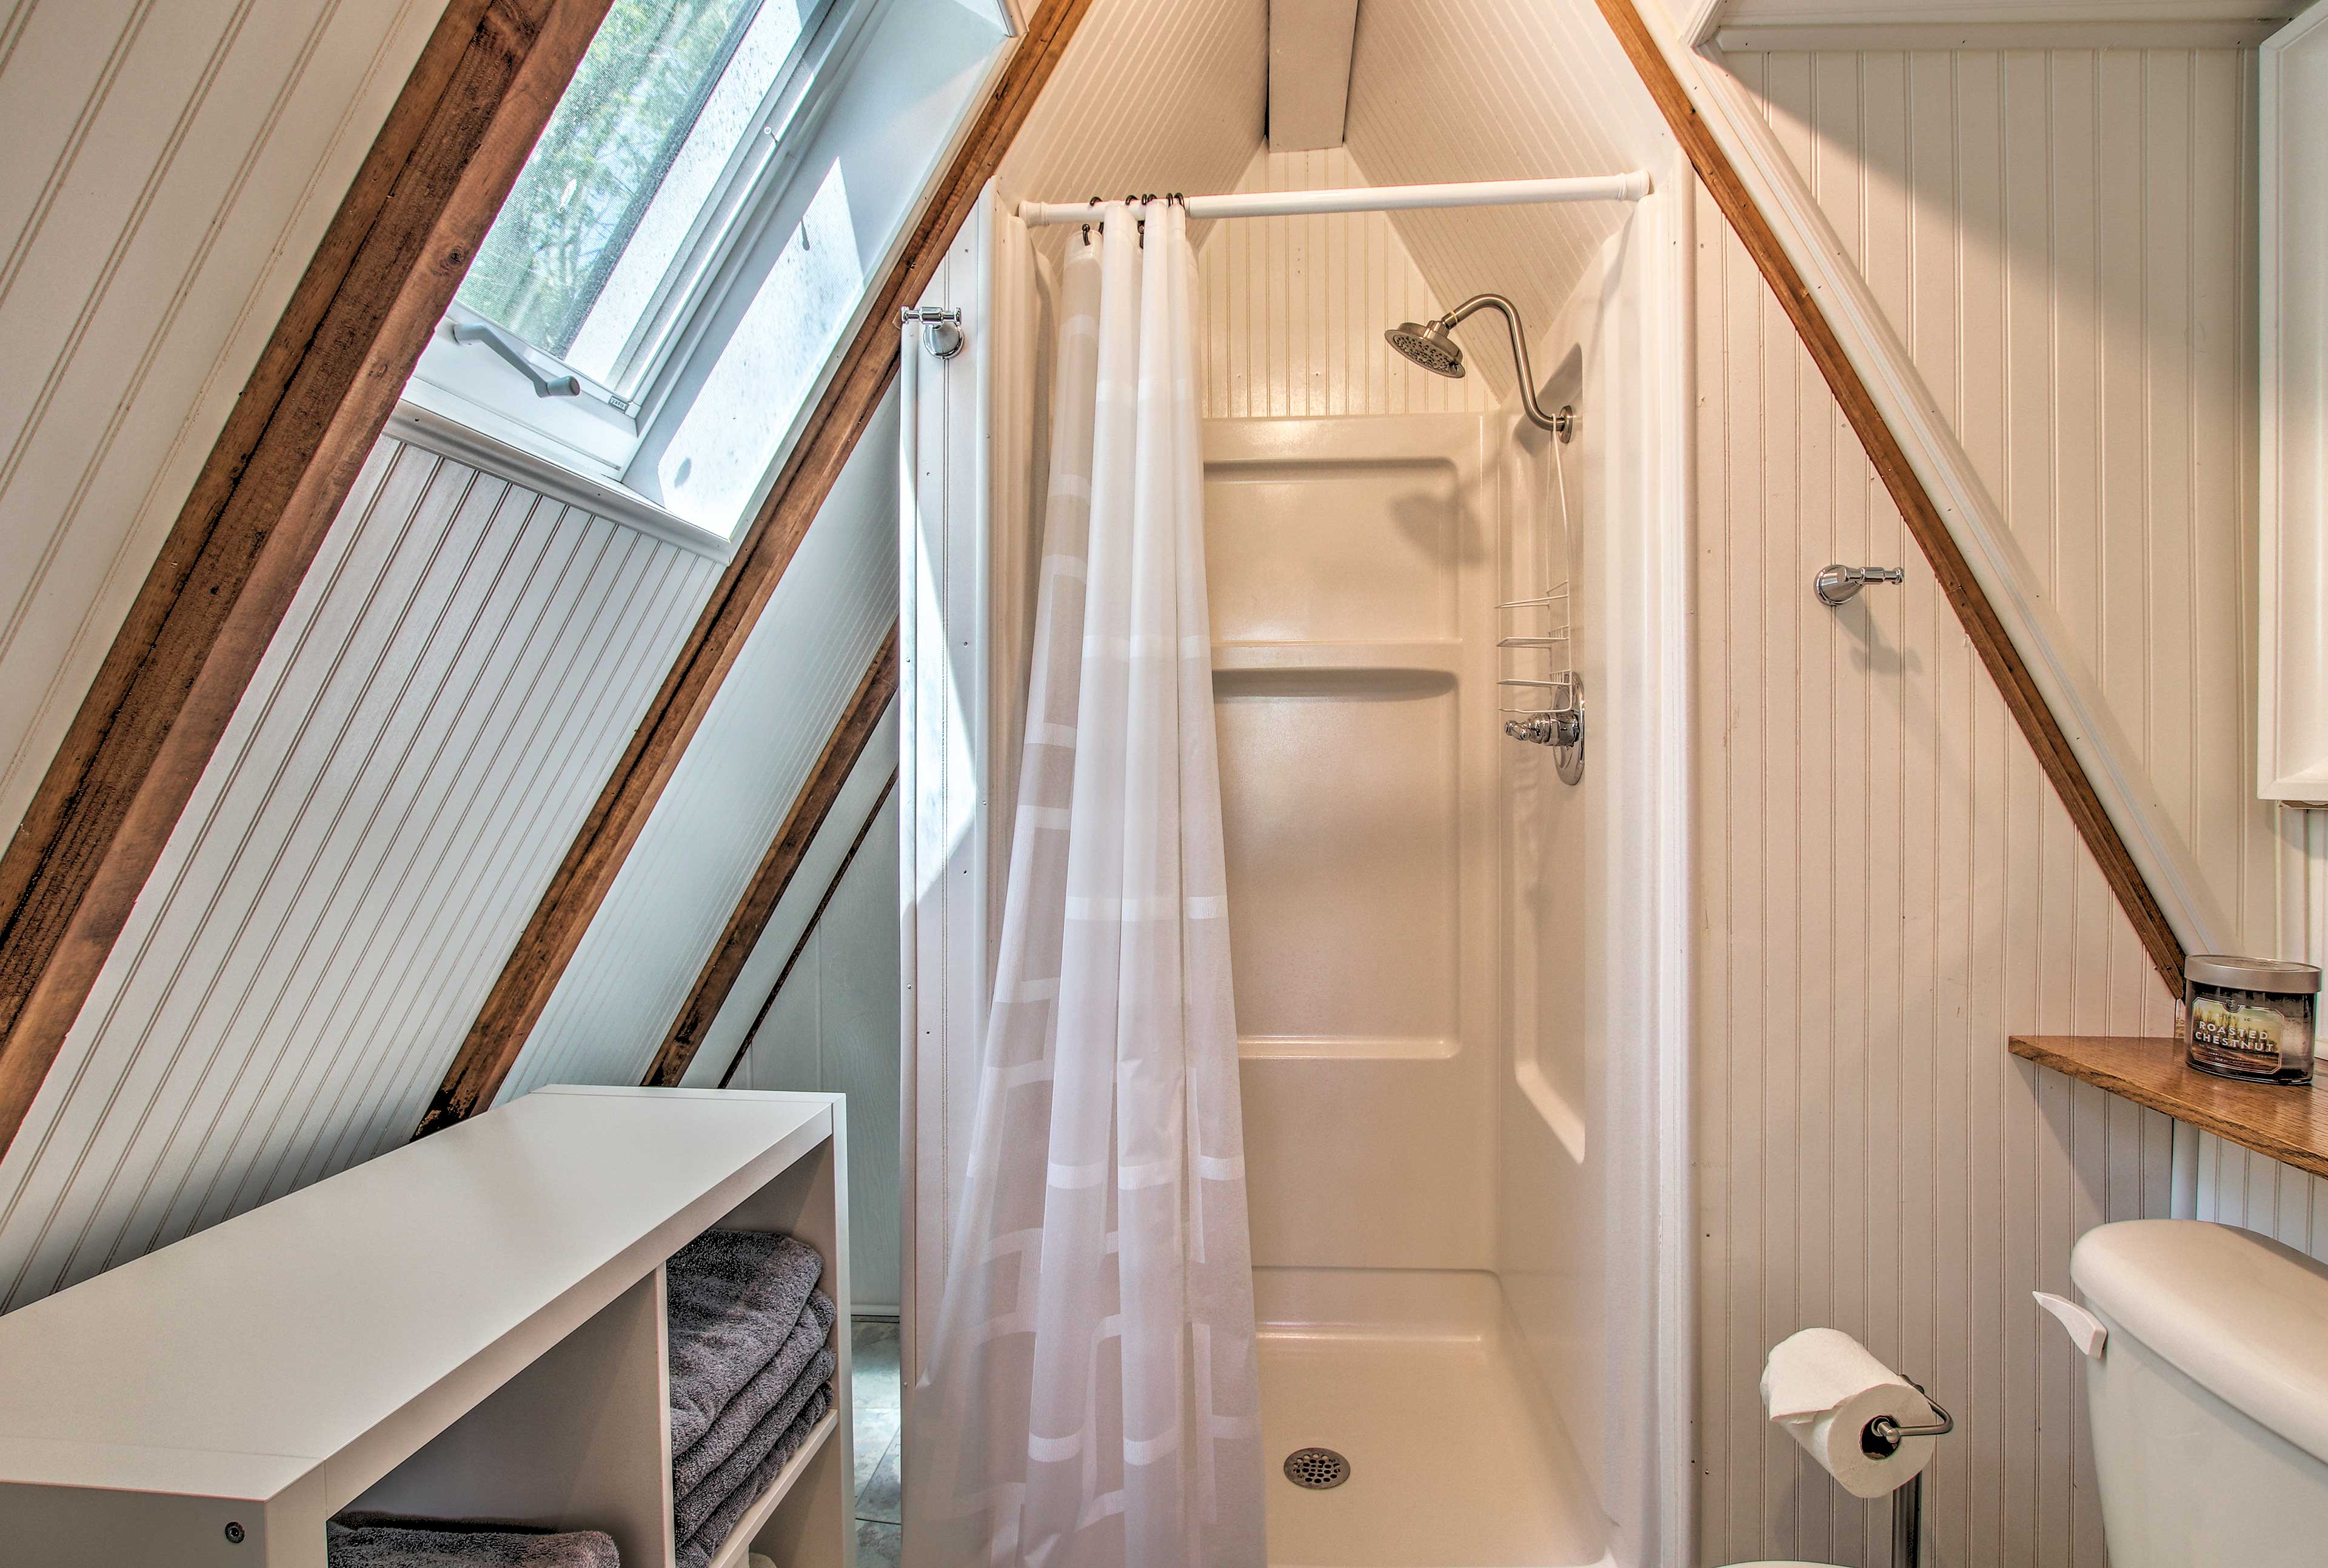 Freshen up and pamper in privacy in this true a-frame bathroom.